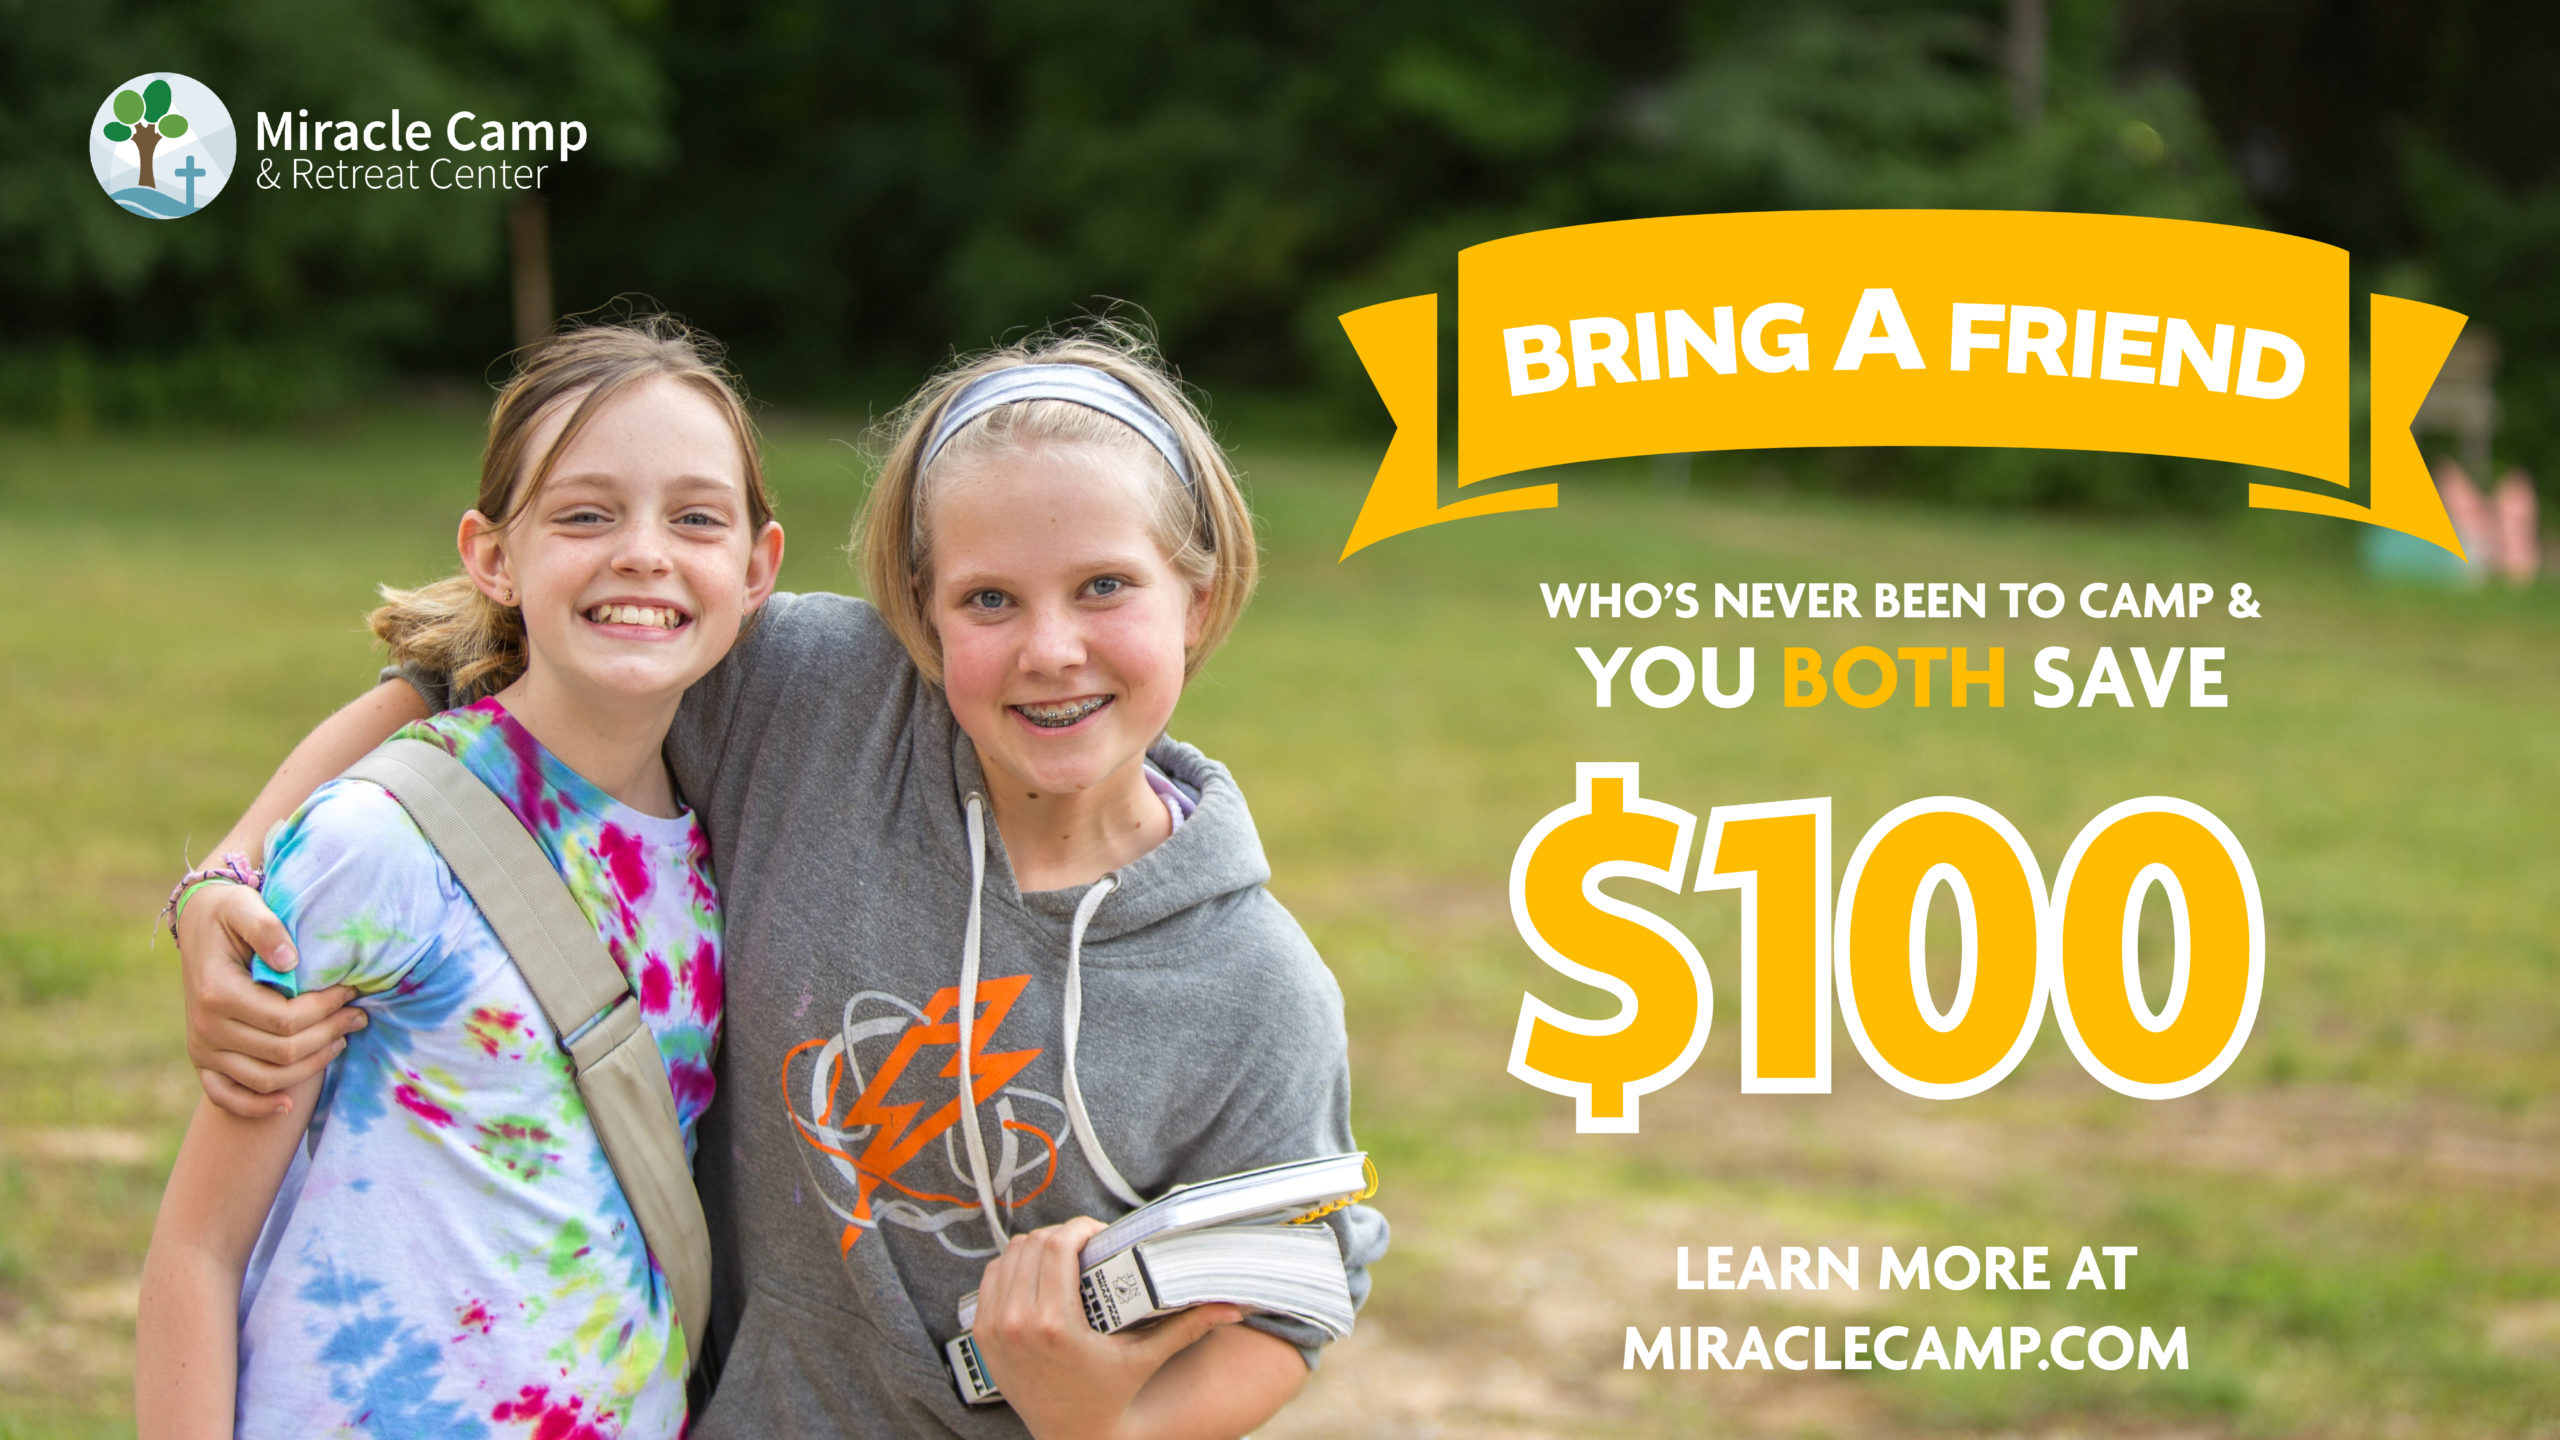 Bring a Friend and You BOTH Save $100!